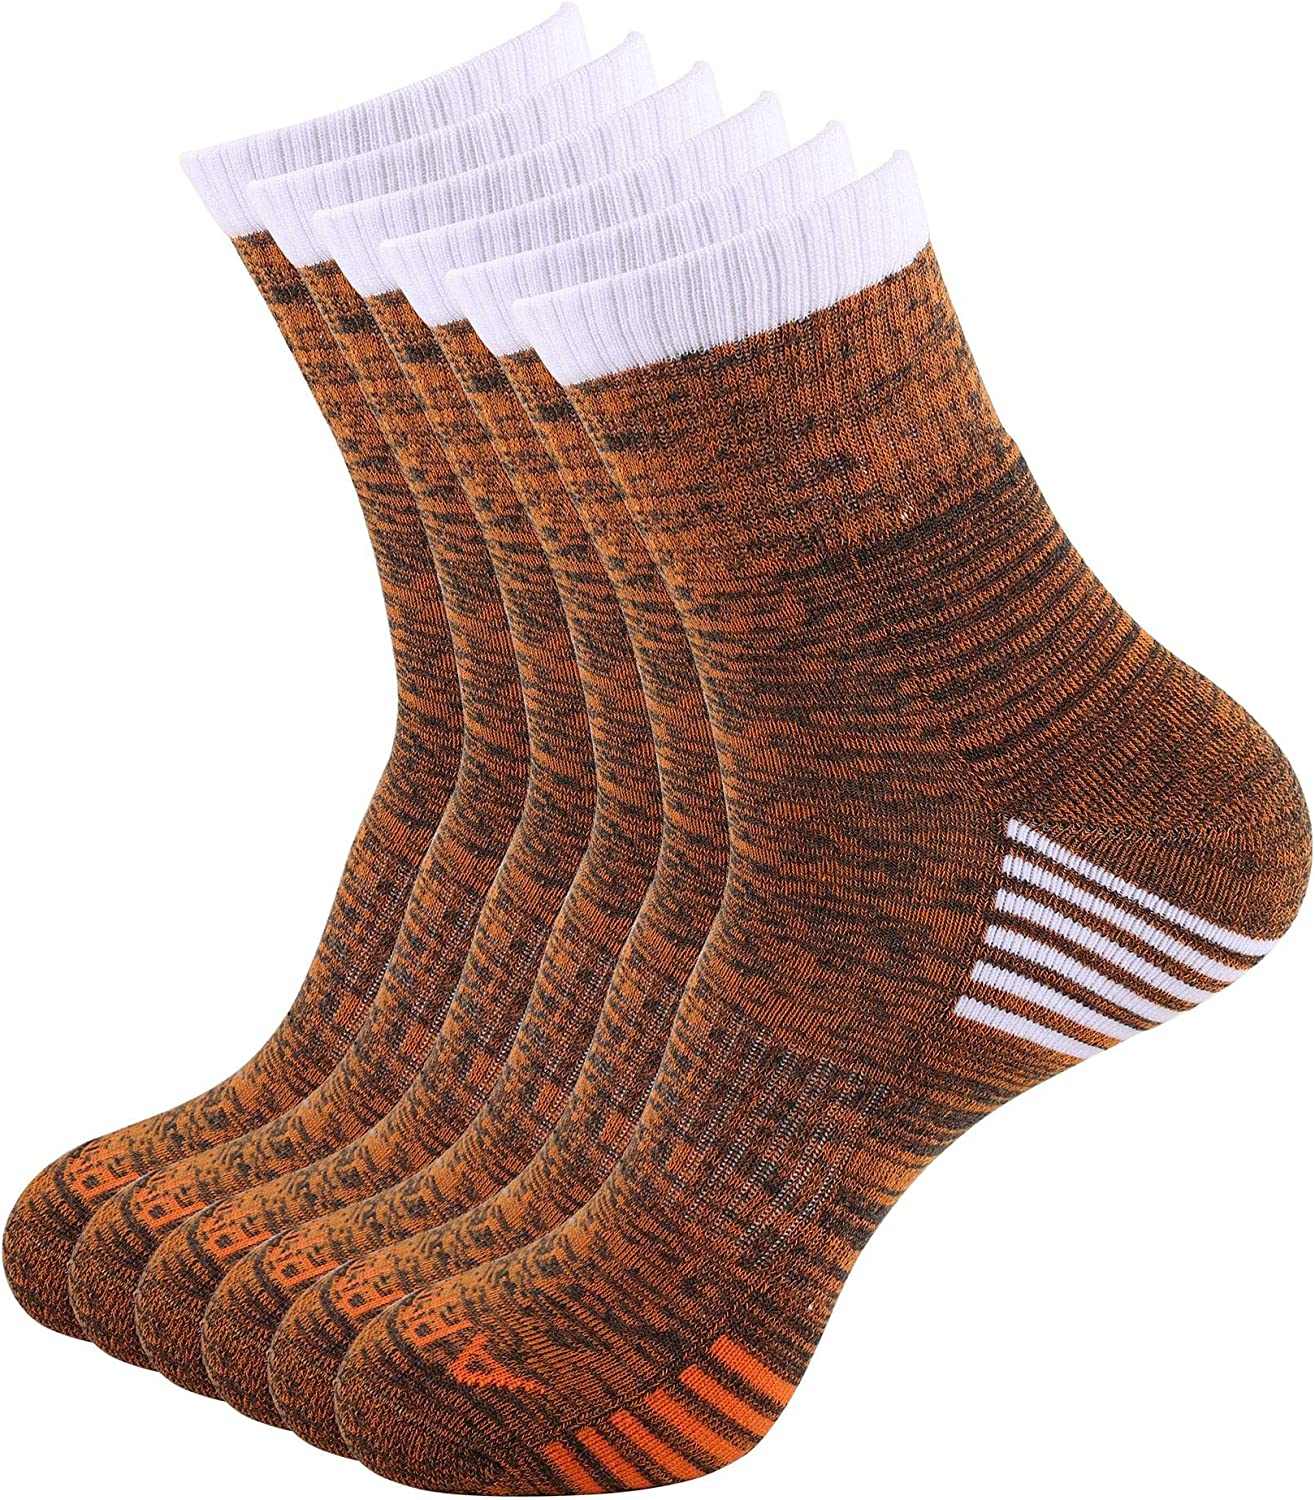 APPRO Hiking Walking Socks Outdoor Recreation Wicking Cushion Crew Socks for Men Size 8-11,Pack of 6